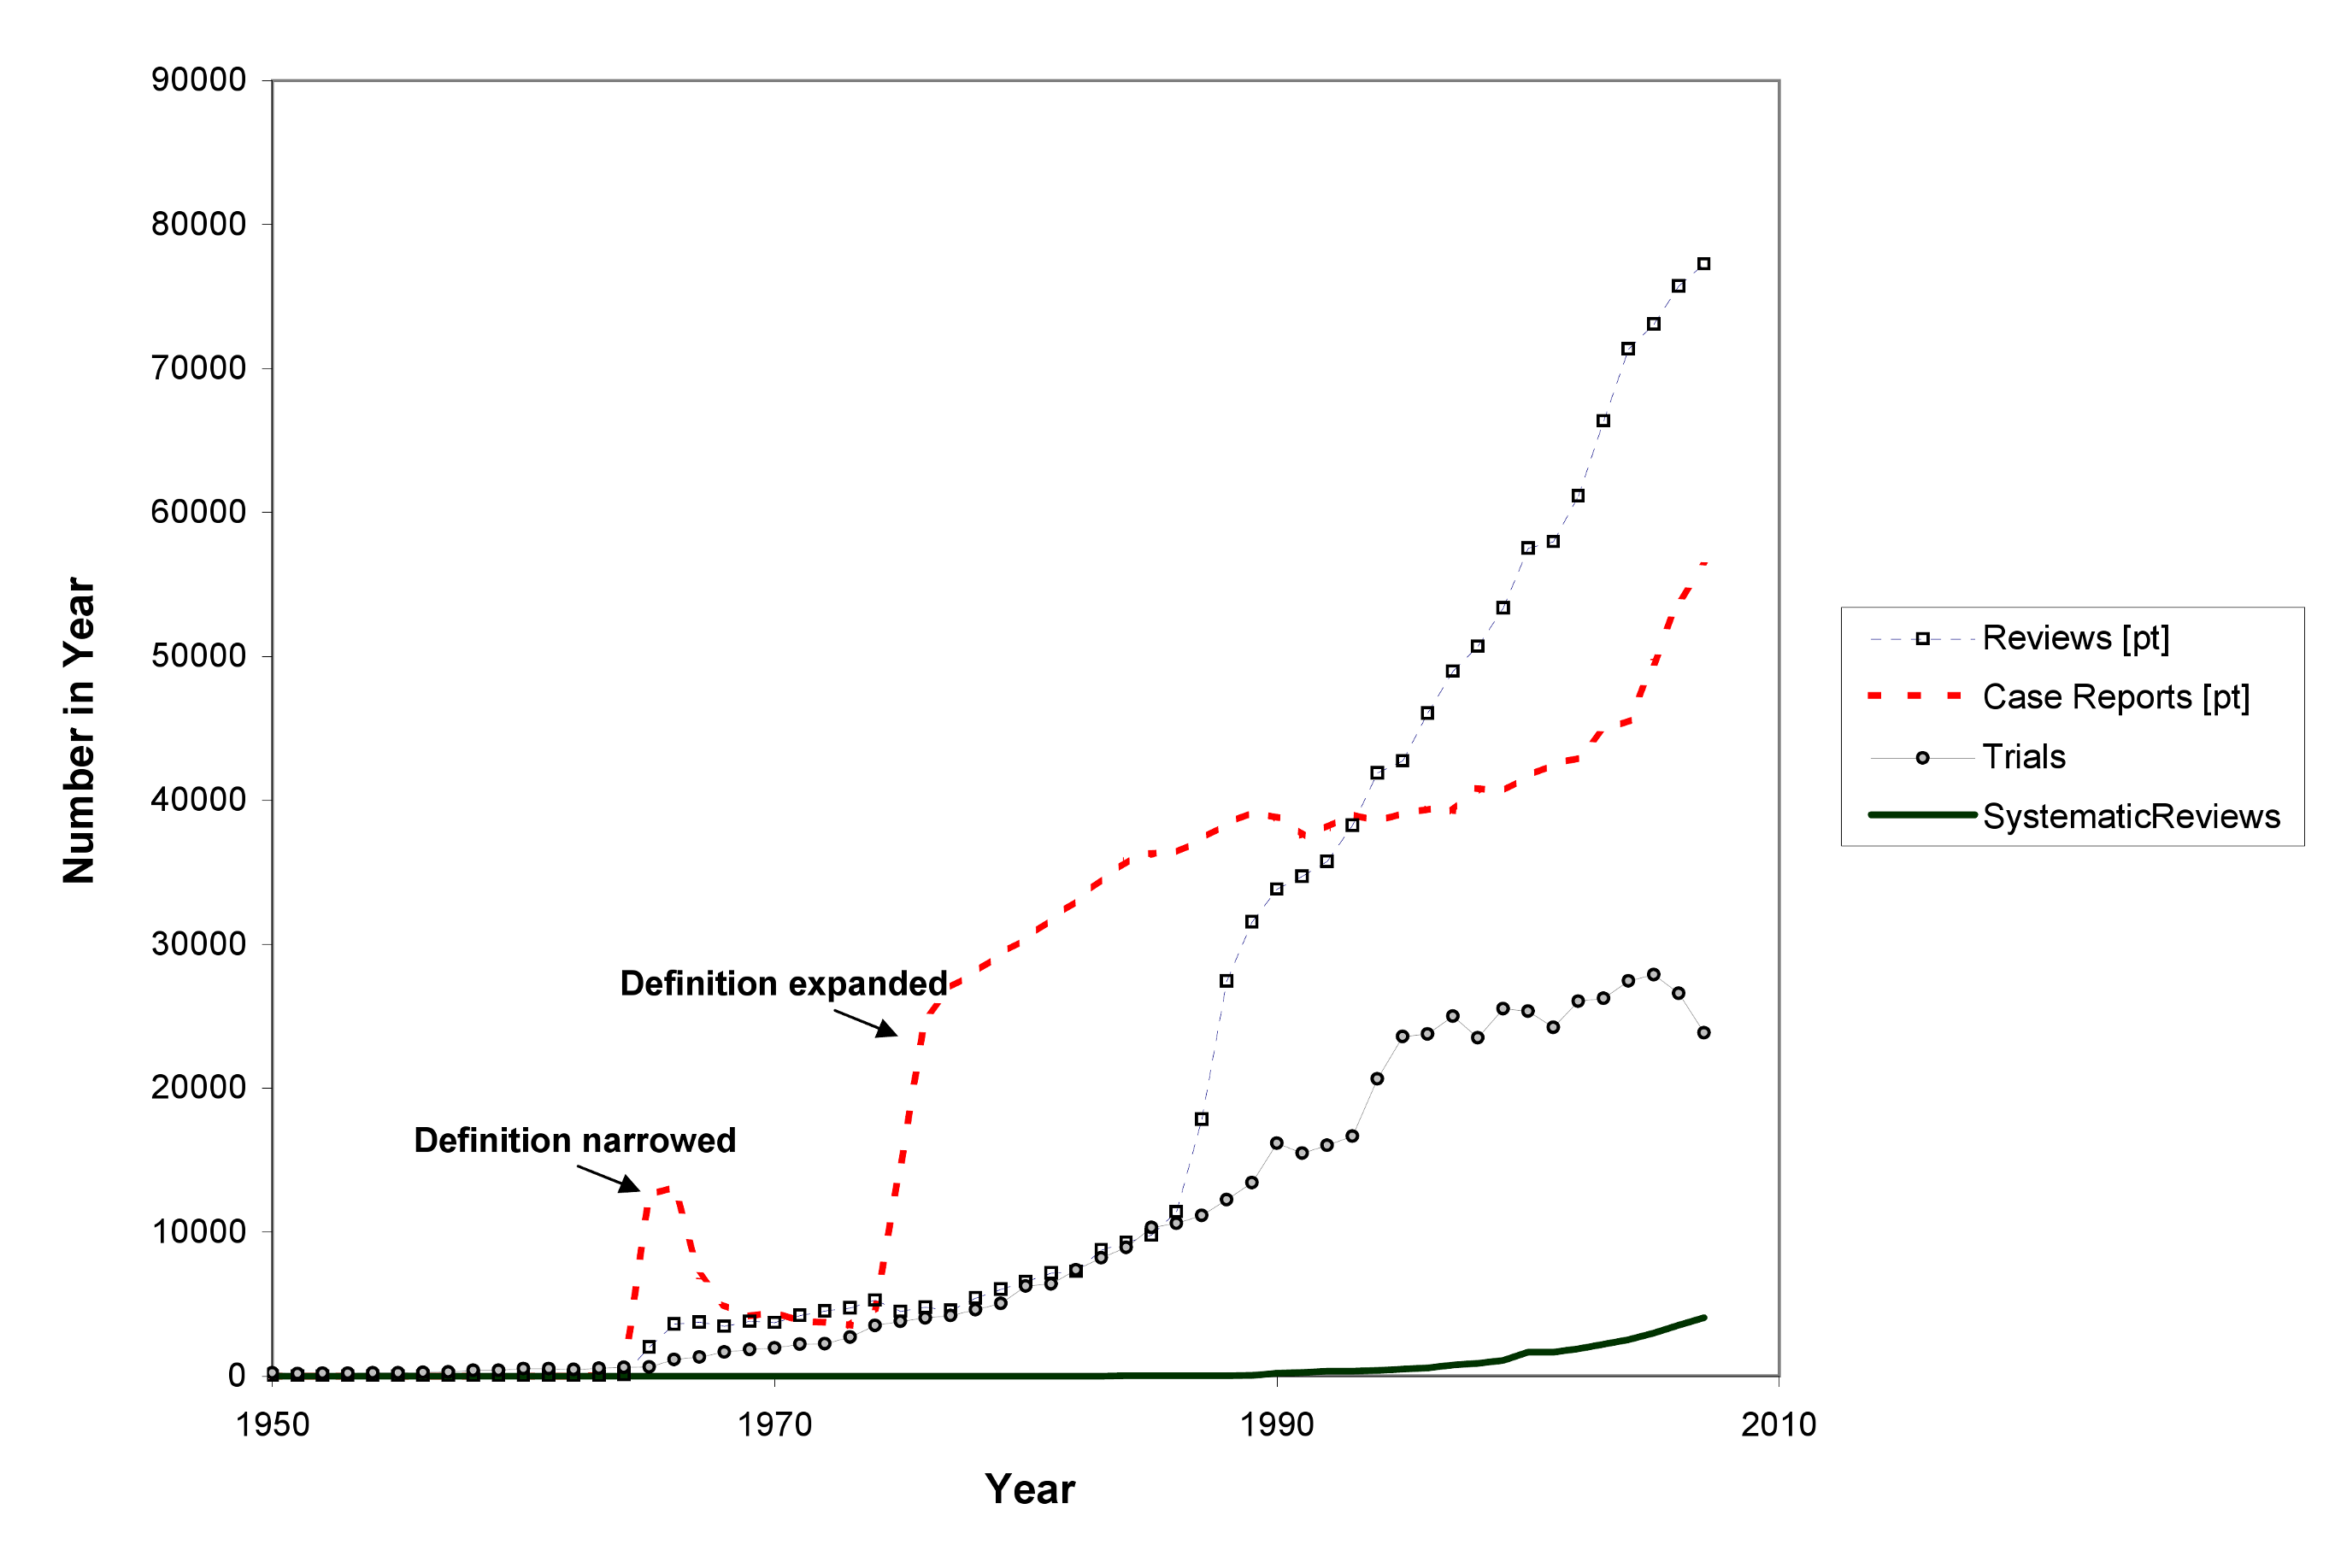 The rise in non-systematic reviews, case reports, trials, and systematic reviews, 1950 to 2007 (as identified in MEDLINE).